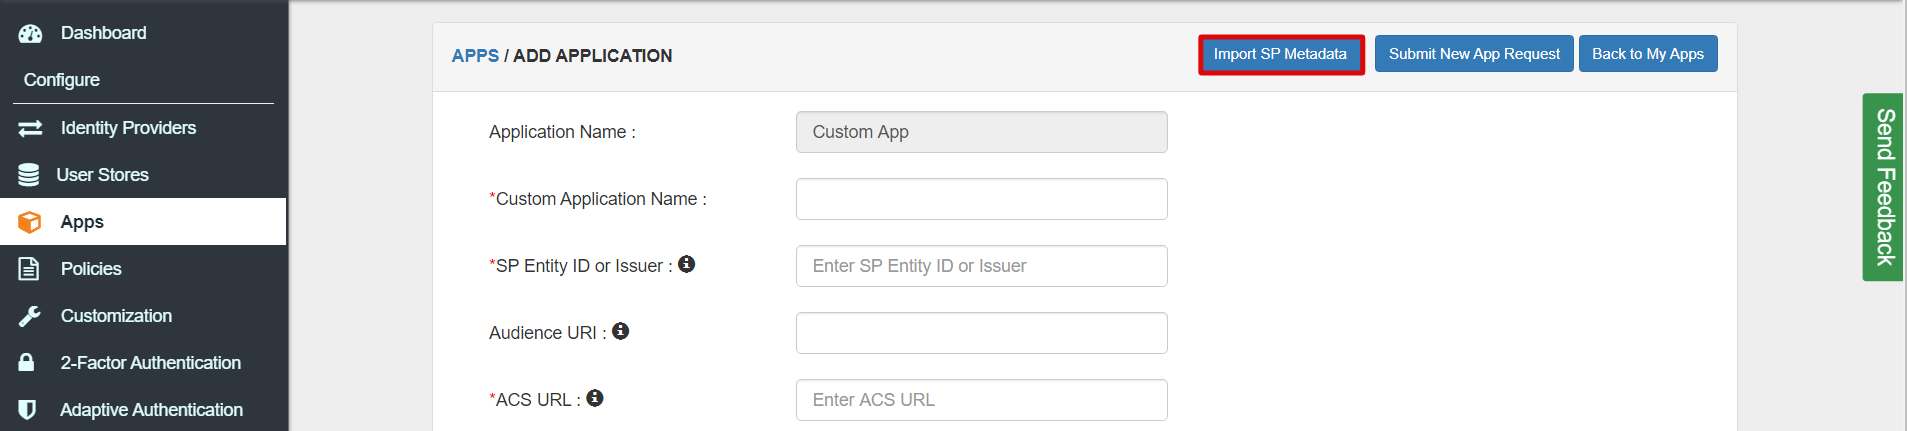 SAML upload XML file Single Sign On for SAML Apps